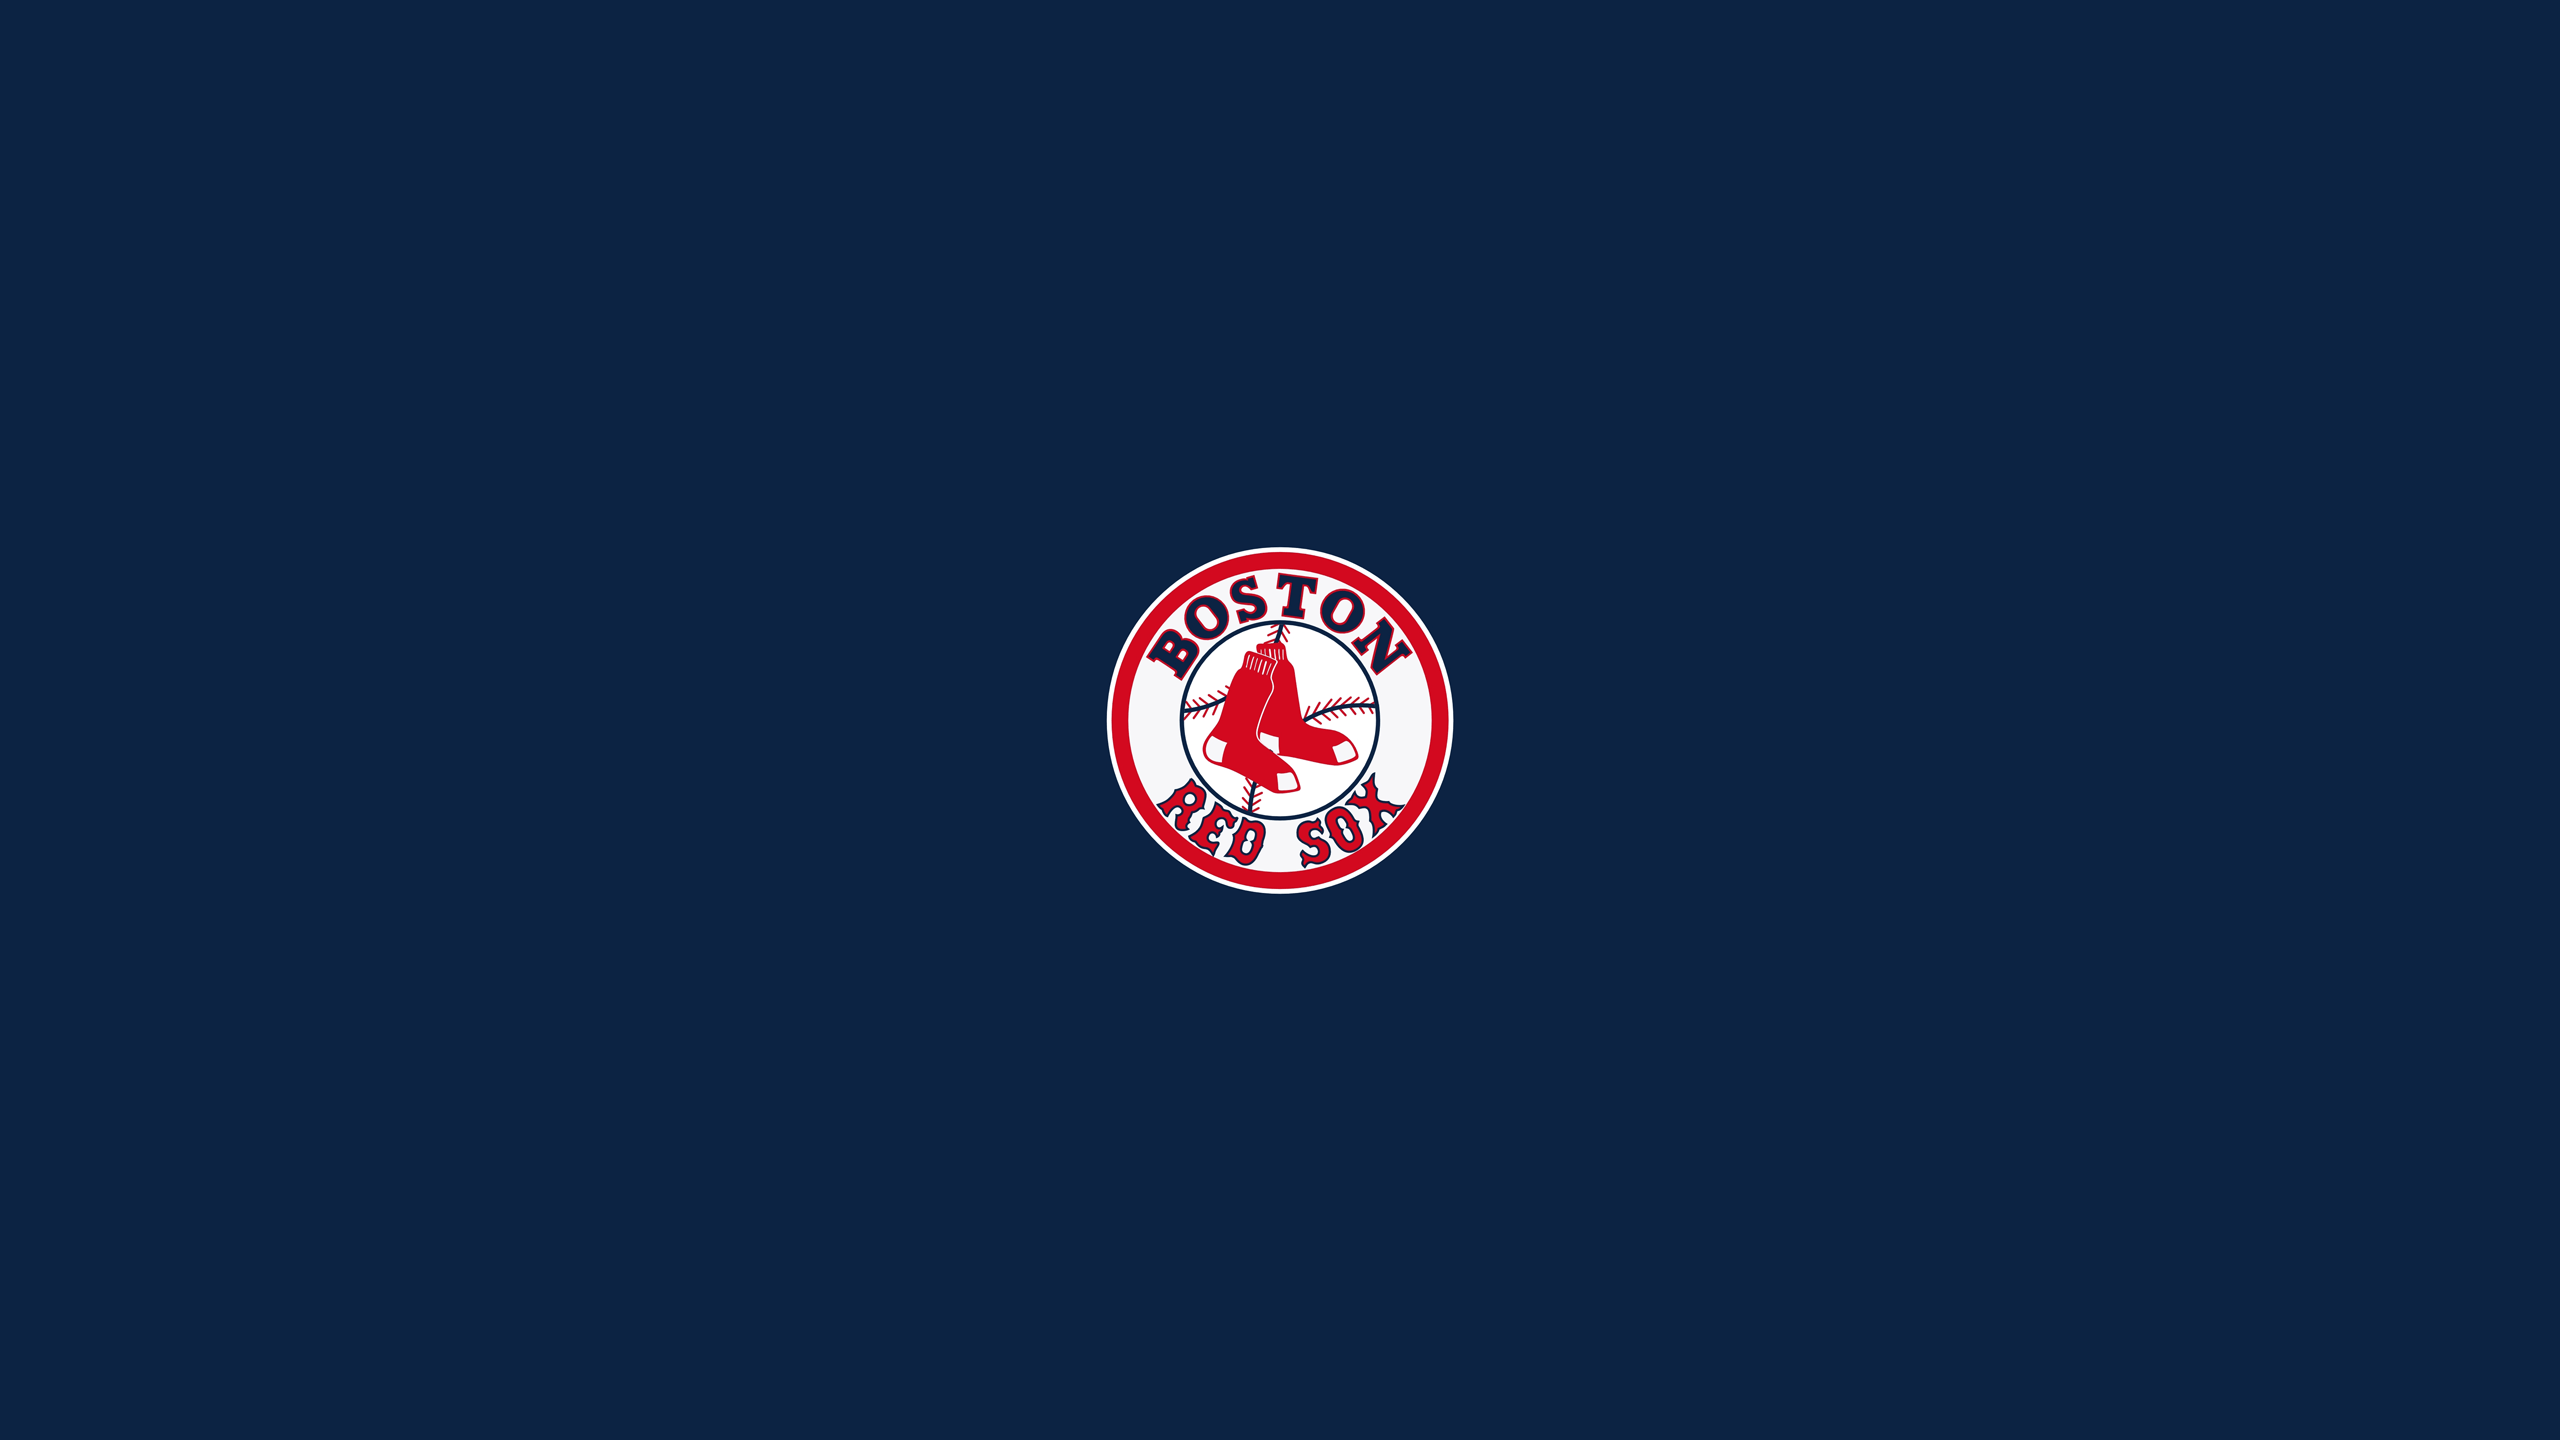 Boston Red Sox Logo Wallpapers 2560x1440